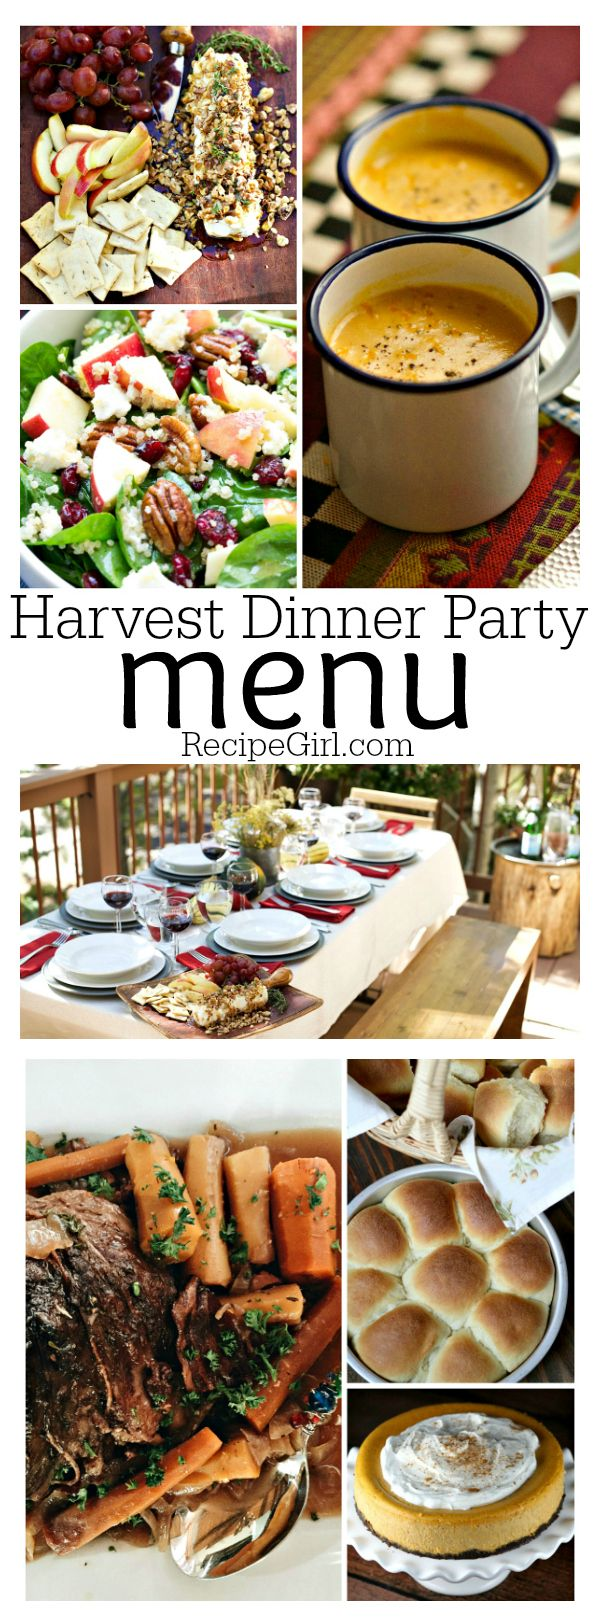 Ordinary Fall Dinner Party Ideas Part - 10: Harvest Dinner Party Menu: Complete Menu With Recipes And Decor Idea  Included. Lovely Fall